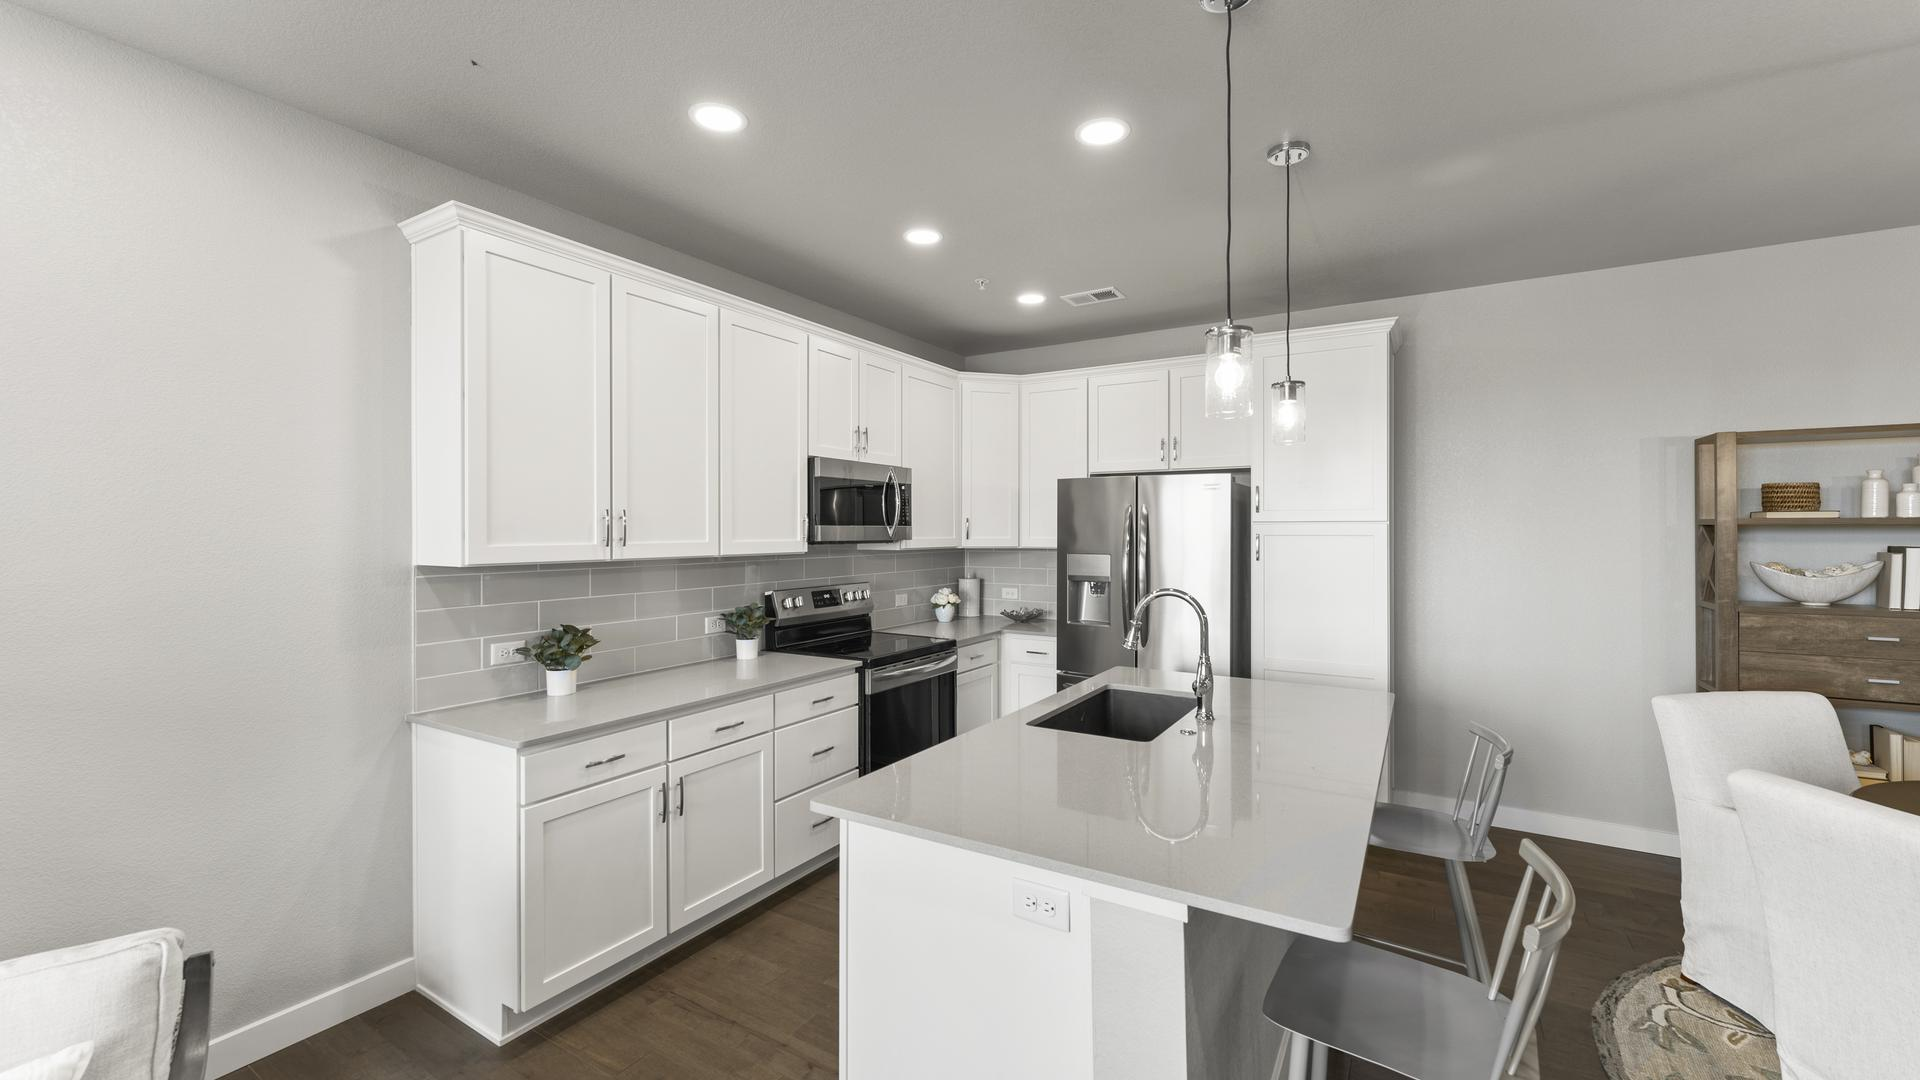 Kitchen - Not Actual Home - Finishes Will Vary . Loveland, CO New Home